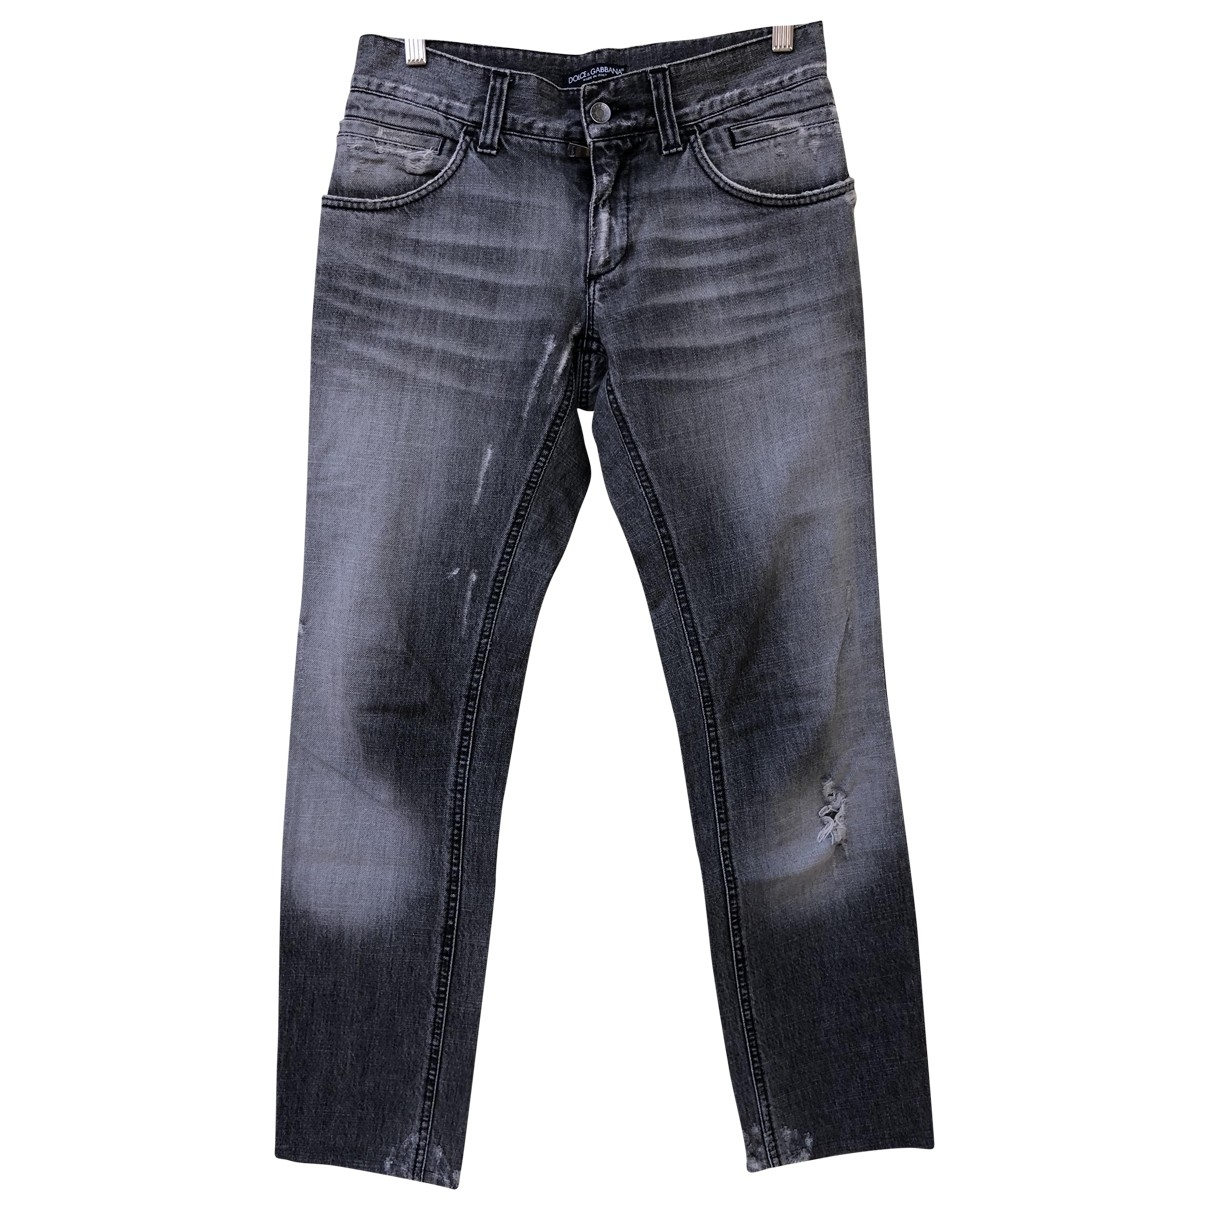 Dolce & Gabbana \N Grey Denim - Jeans Trousers for Men 44 IT